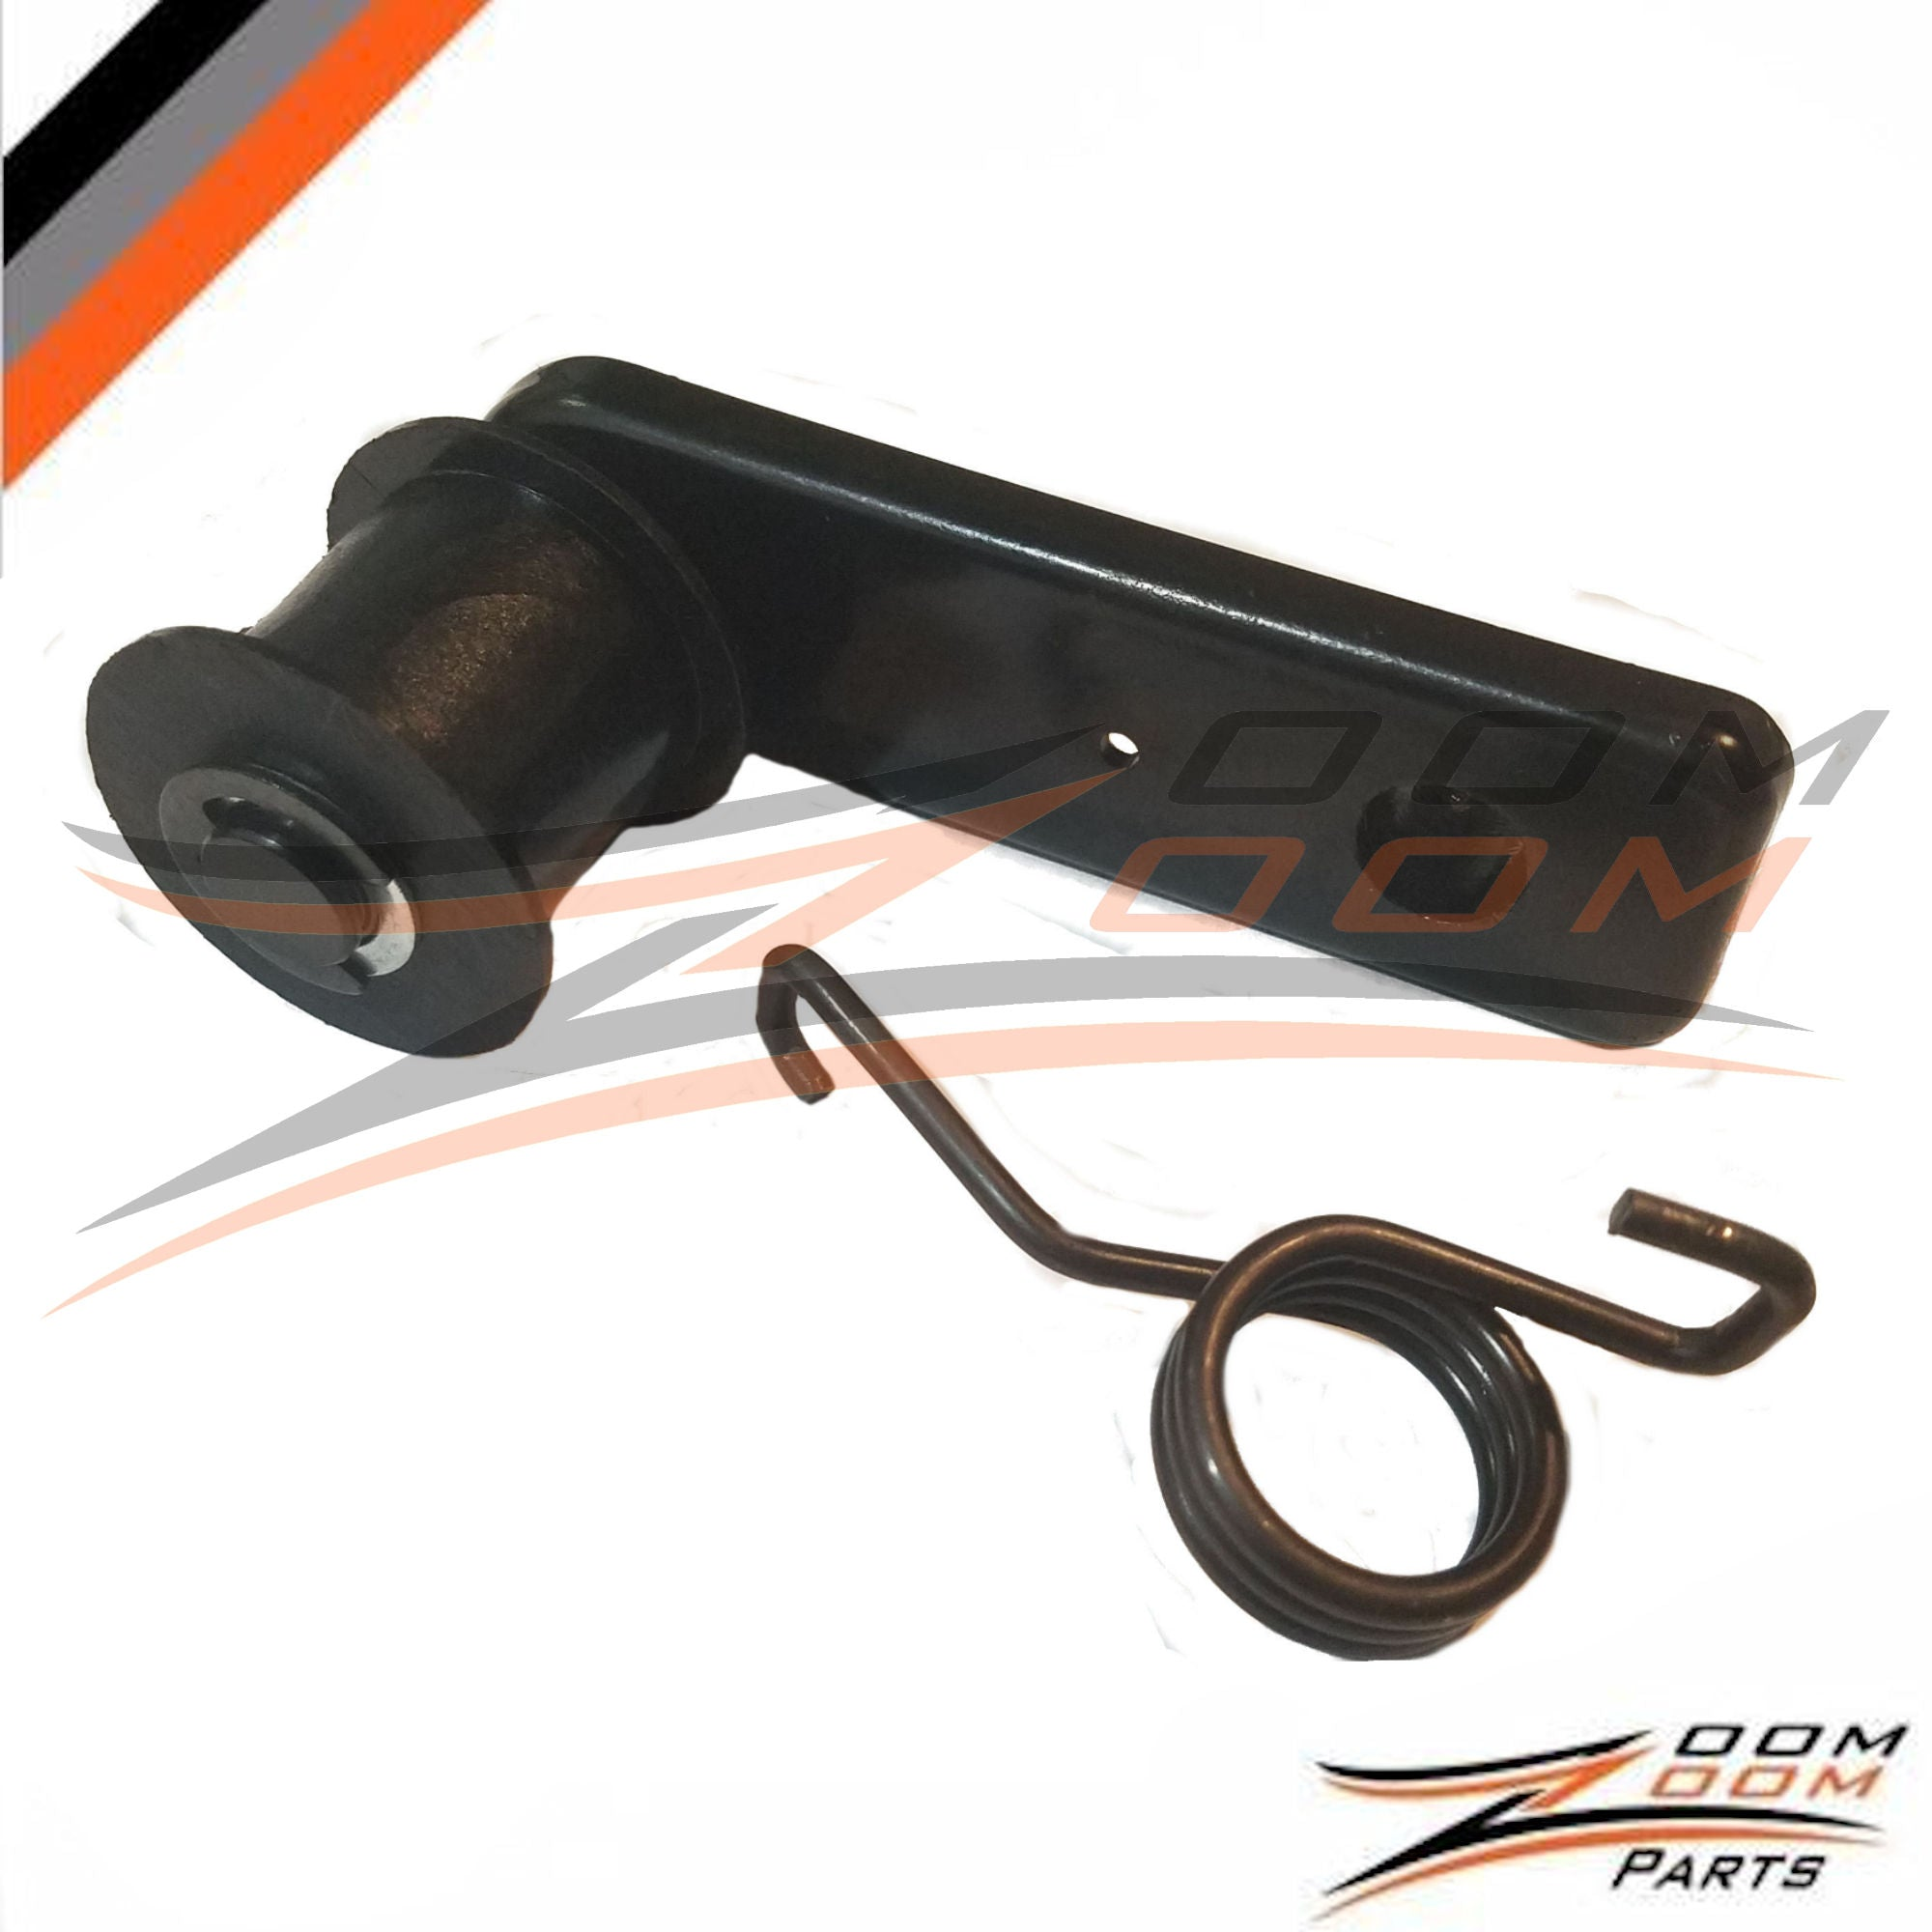 Chain Tensioner For 2004-2018 Polaris RZR 170 Sportsman 90 Predator 90  Sportsman 110 Outlaw 110 Outlaw 90 FREE FEDEX 2 DAY SHIPPING - Zoom Zoom  Parts